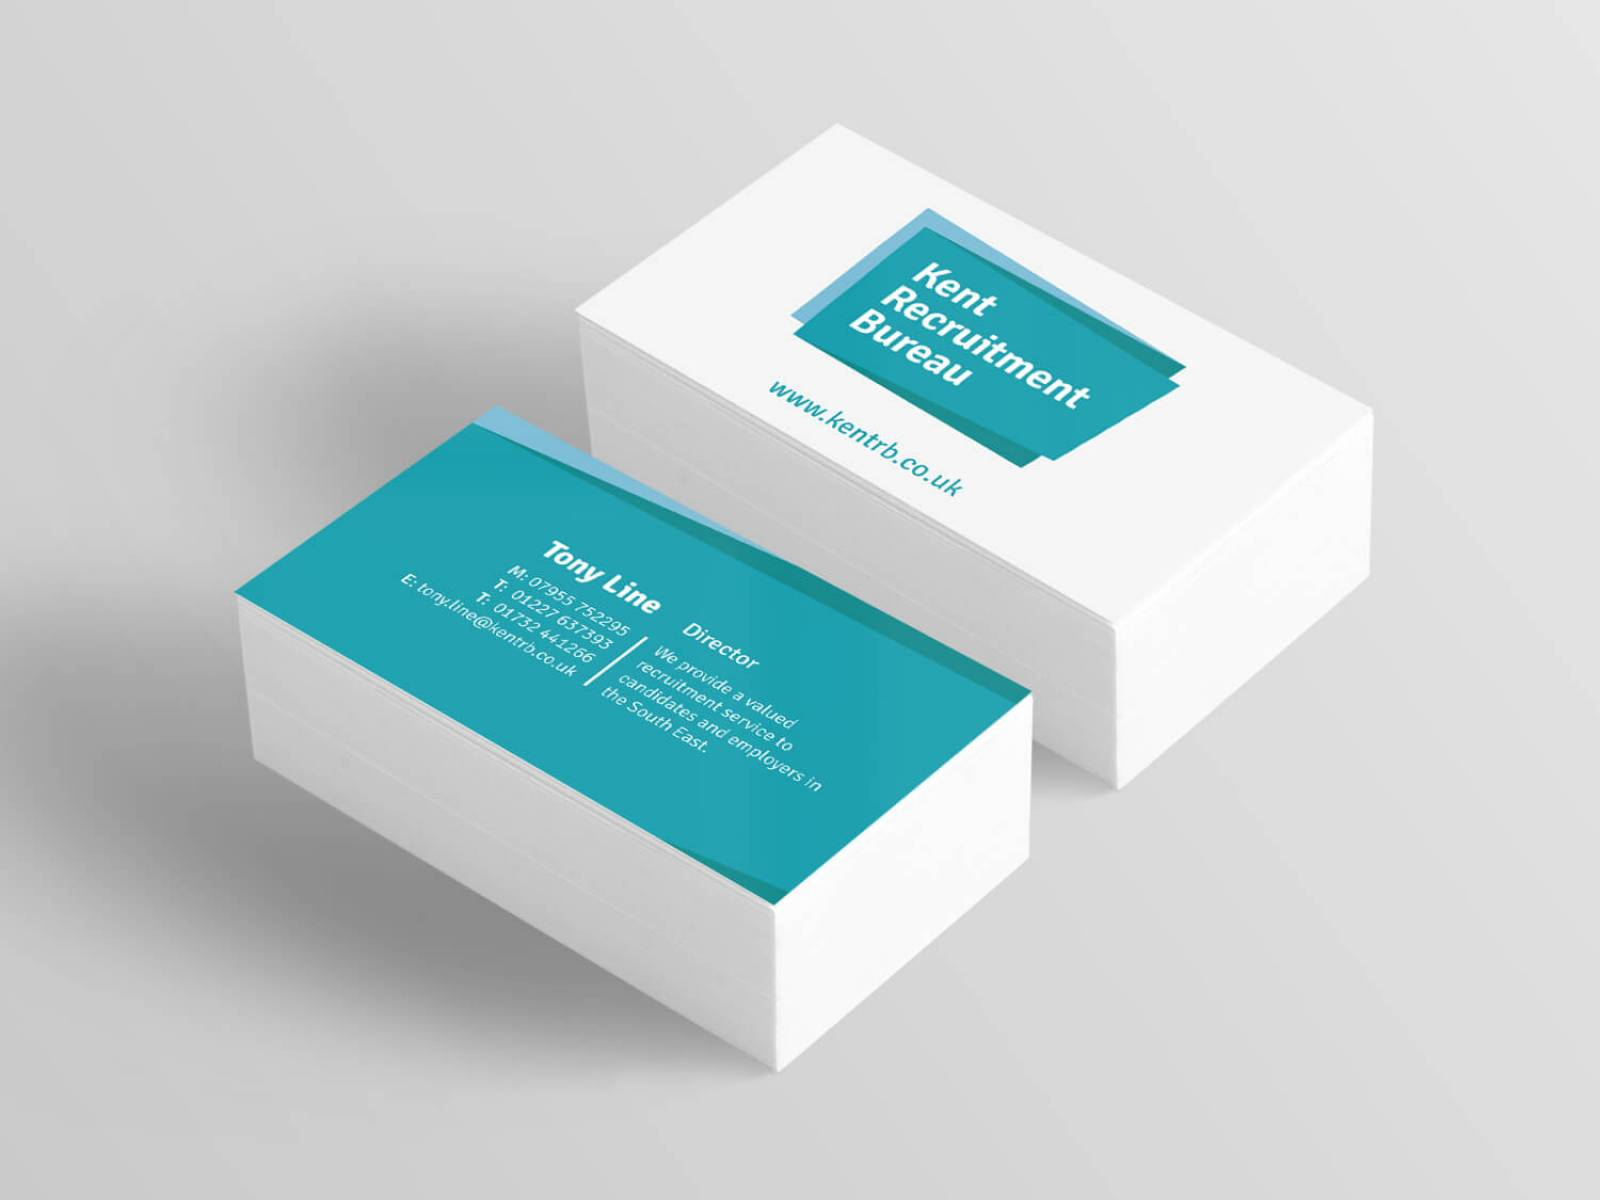 KRB-business-card-corporate-identity-agency-graphic-design-canterbury.jpg